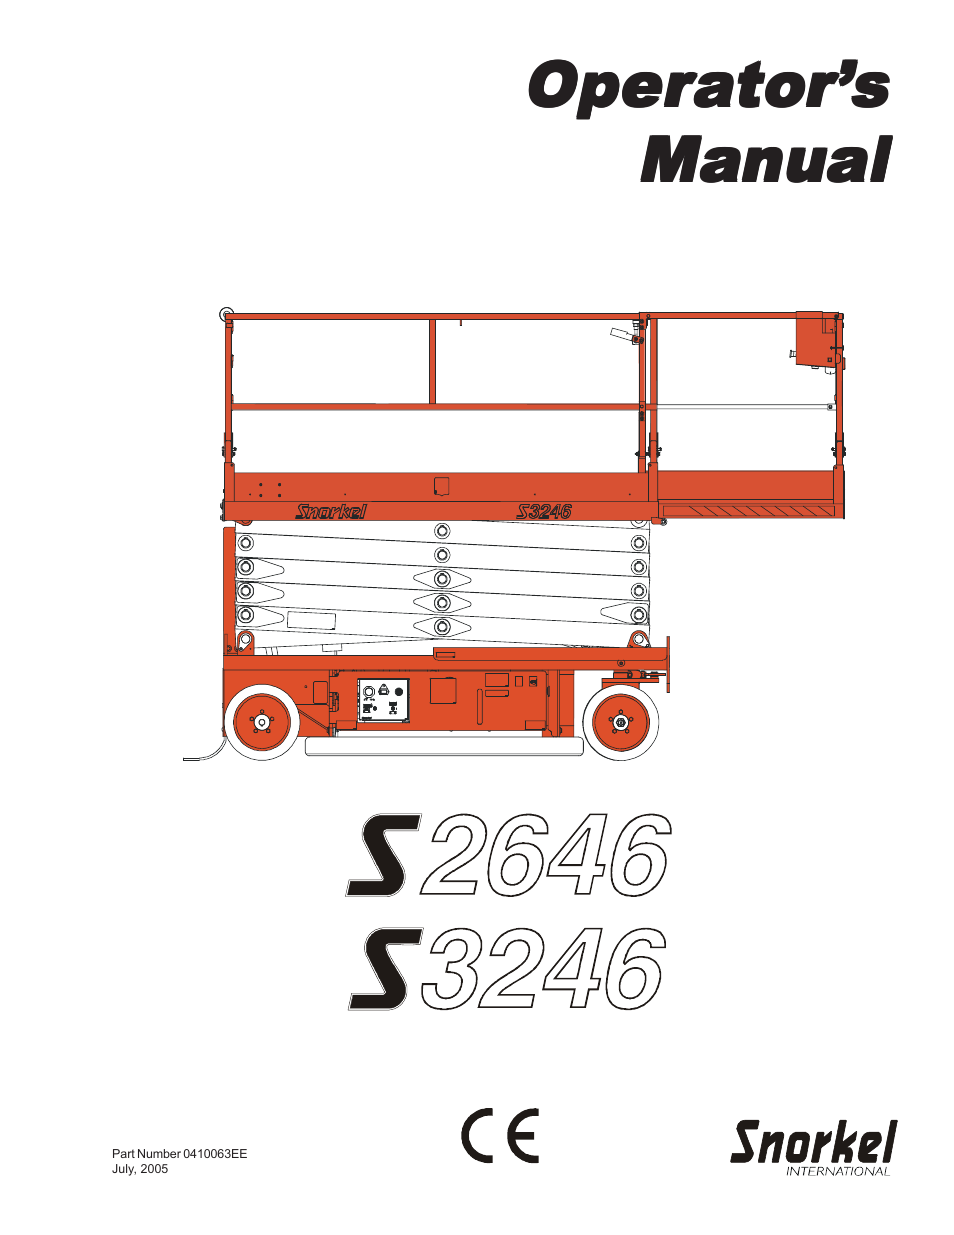 aem aerial platform safety manual pdf